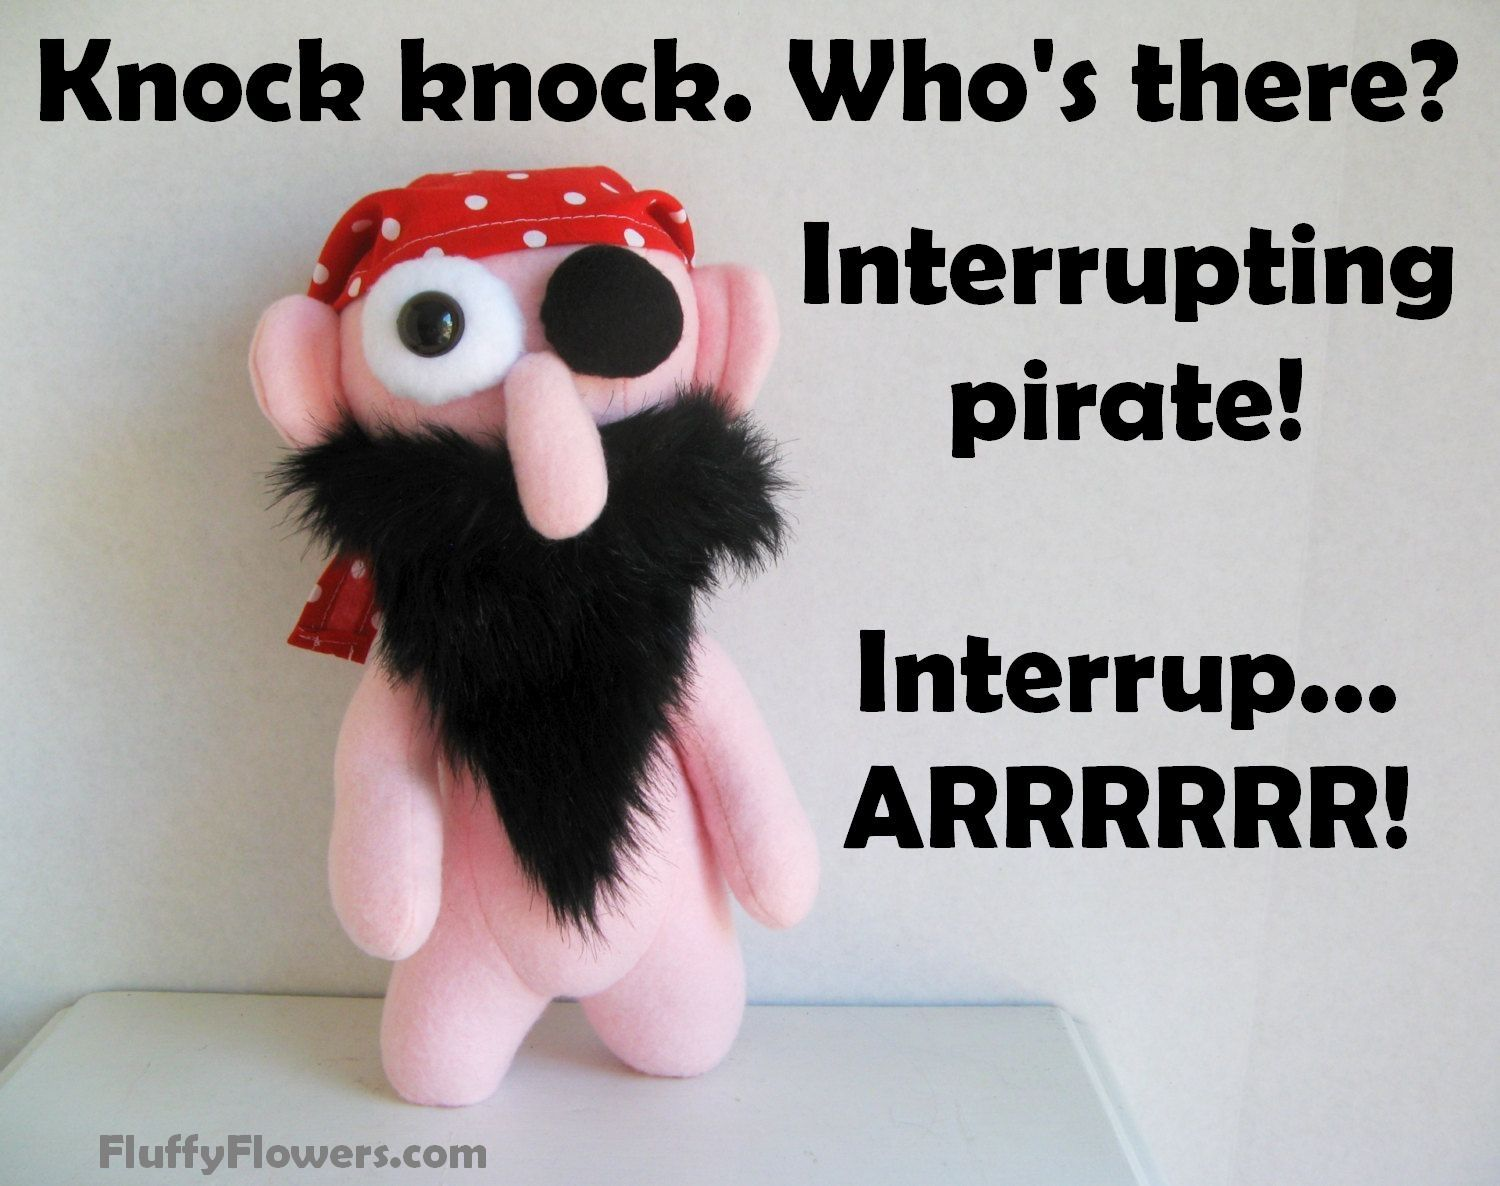 Funny Meme Knock Knock Jokes : Knock knock jokes that are so dumb they re actually amazing